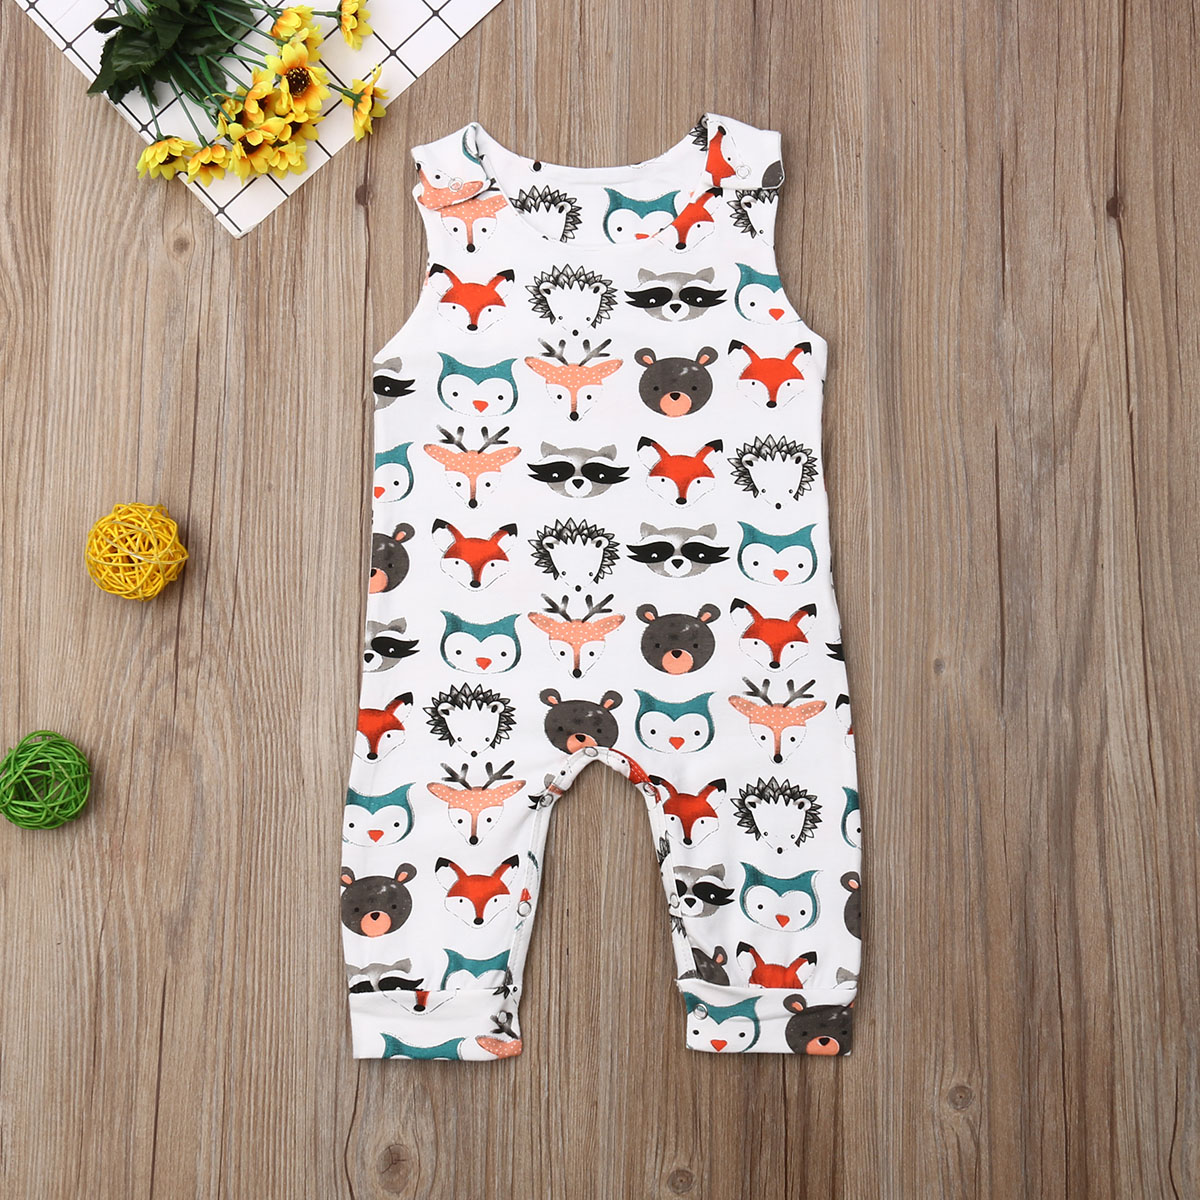 Pudcoco Newborn Baby Boy Girl Clothes Sleeveless Cartoon Animals Print Romper Jumpsuit One-Piece Outfit Sunsuit Clothes